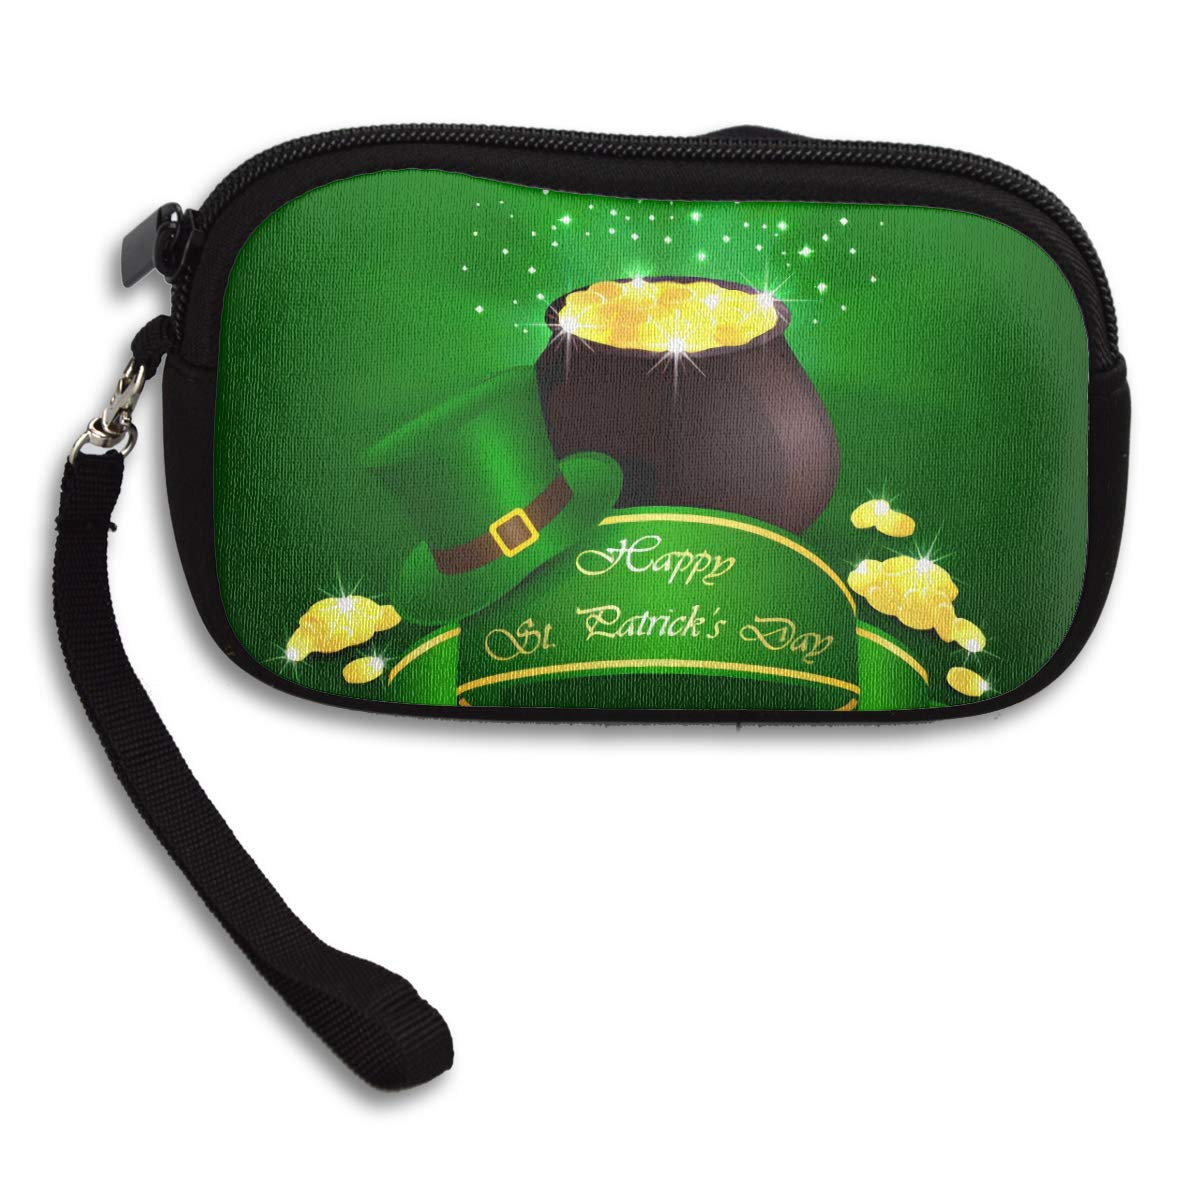 Coin Purse Leprechaun Gold Ribbon Saint Coin Luck Ray Coin Pouch With Zipper,Make Up Bag,Wallet Bag Change Pouch Key Holder